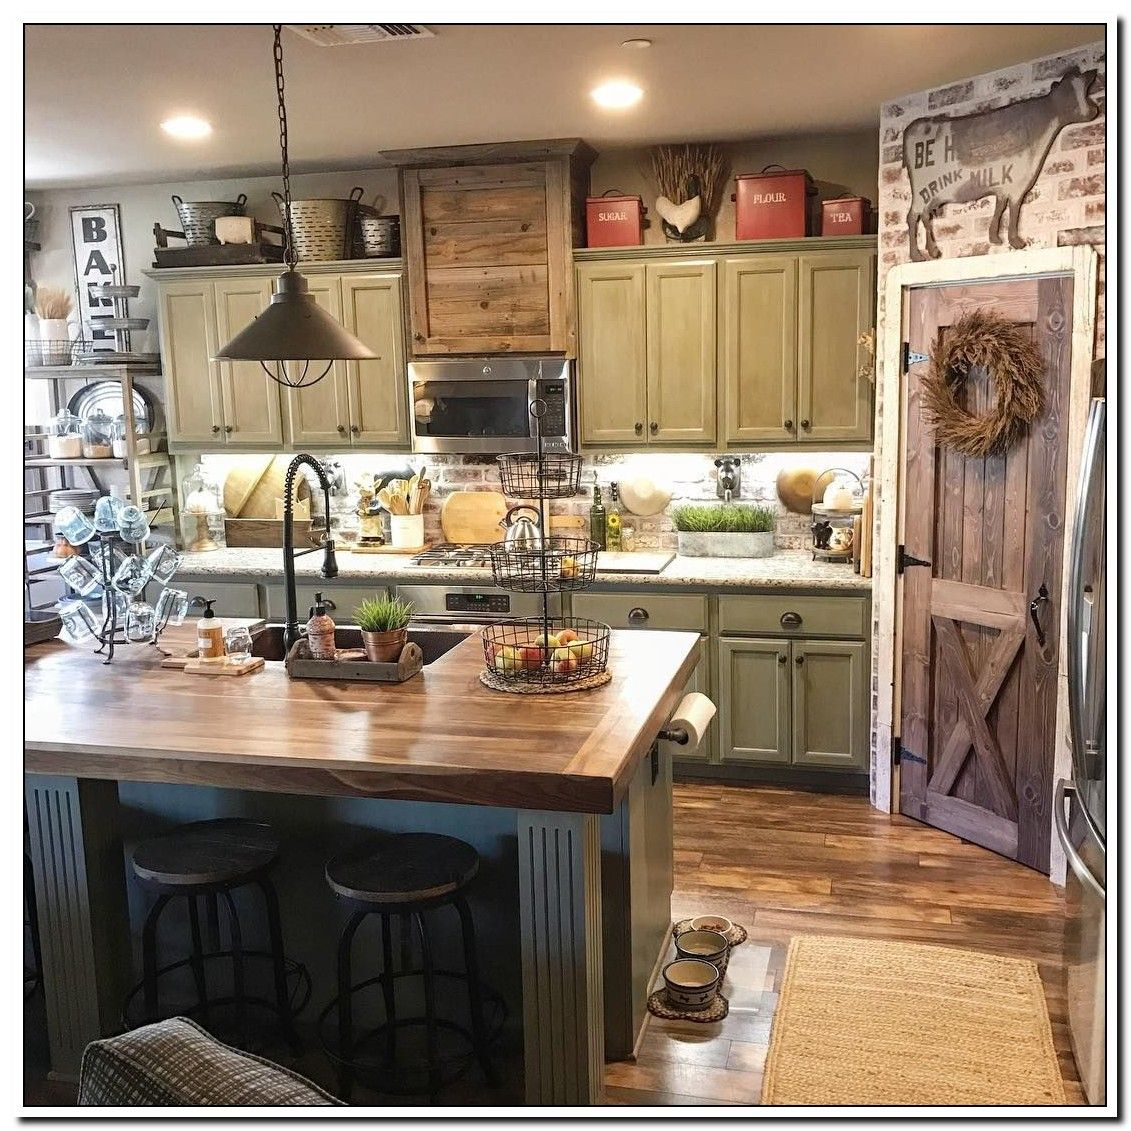 96 Reference Of Rustic Farmhouse Decor Above Kitchen Cabinets In 2020 Kitchen Decor Home Decor Kitchen Farmhouse Kitchen Decor